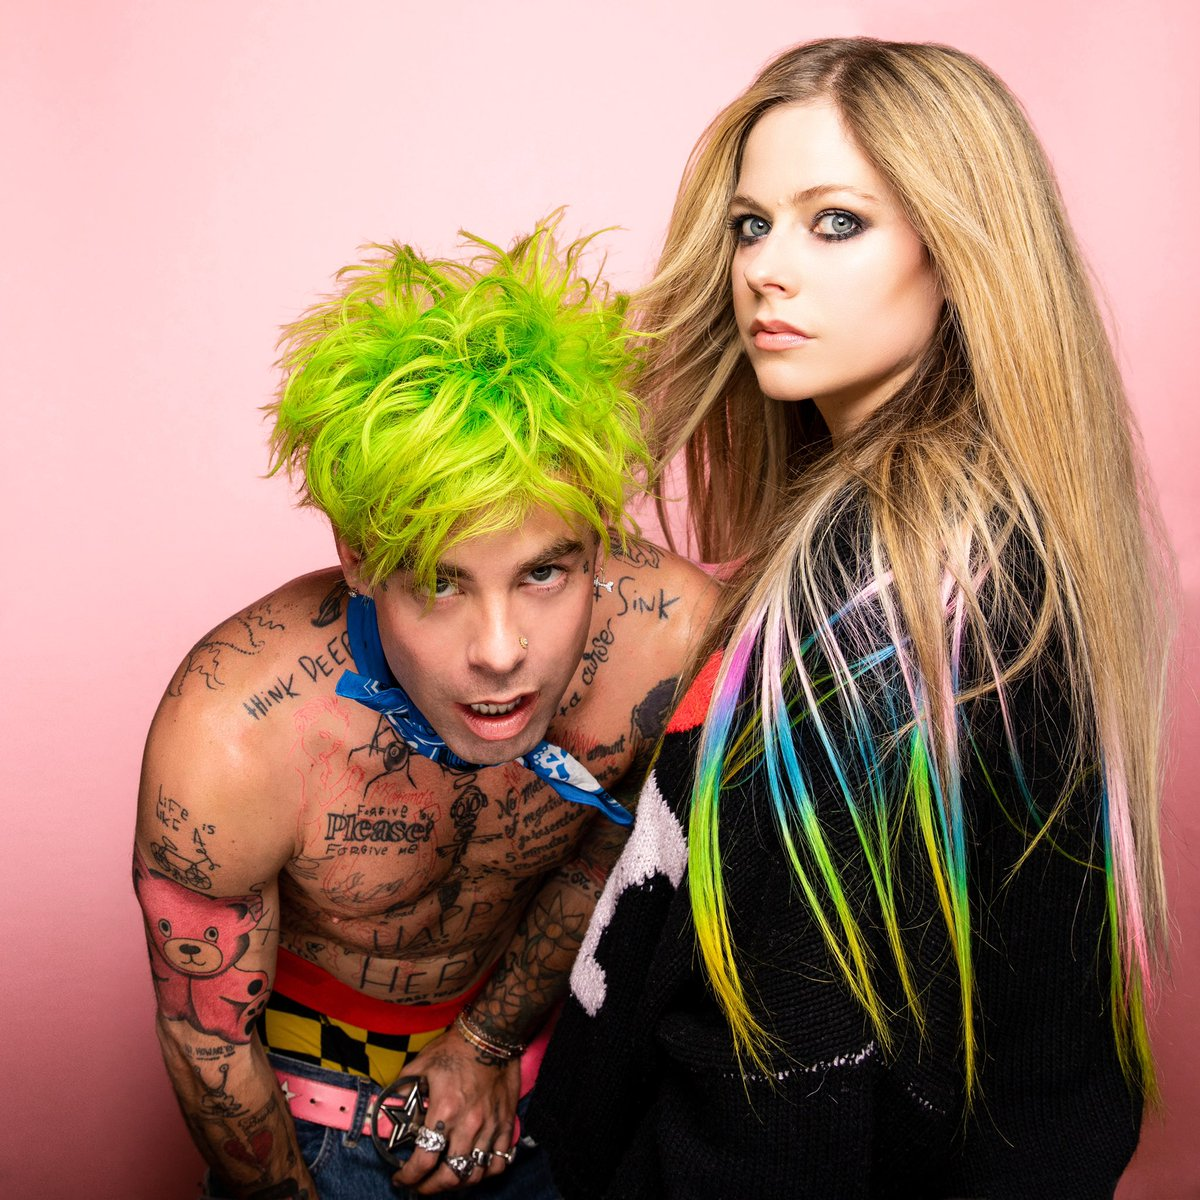 """.@MODSUN's new single """"Flames"""" feat. @AvrilLavigne comes out on January 8th."""